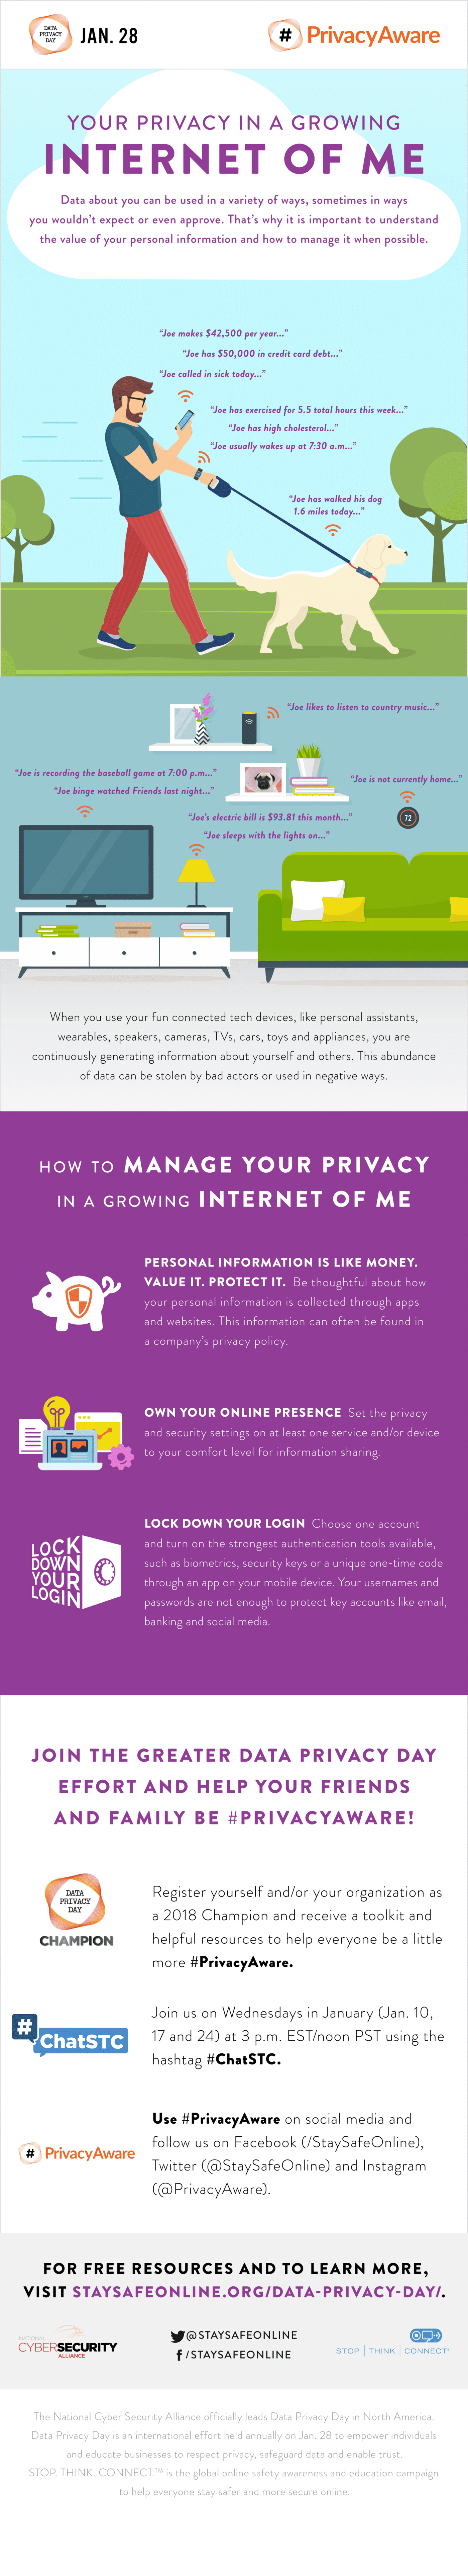 Internet_of_Me Infographic-1.png